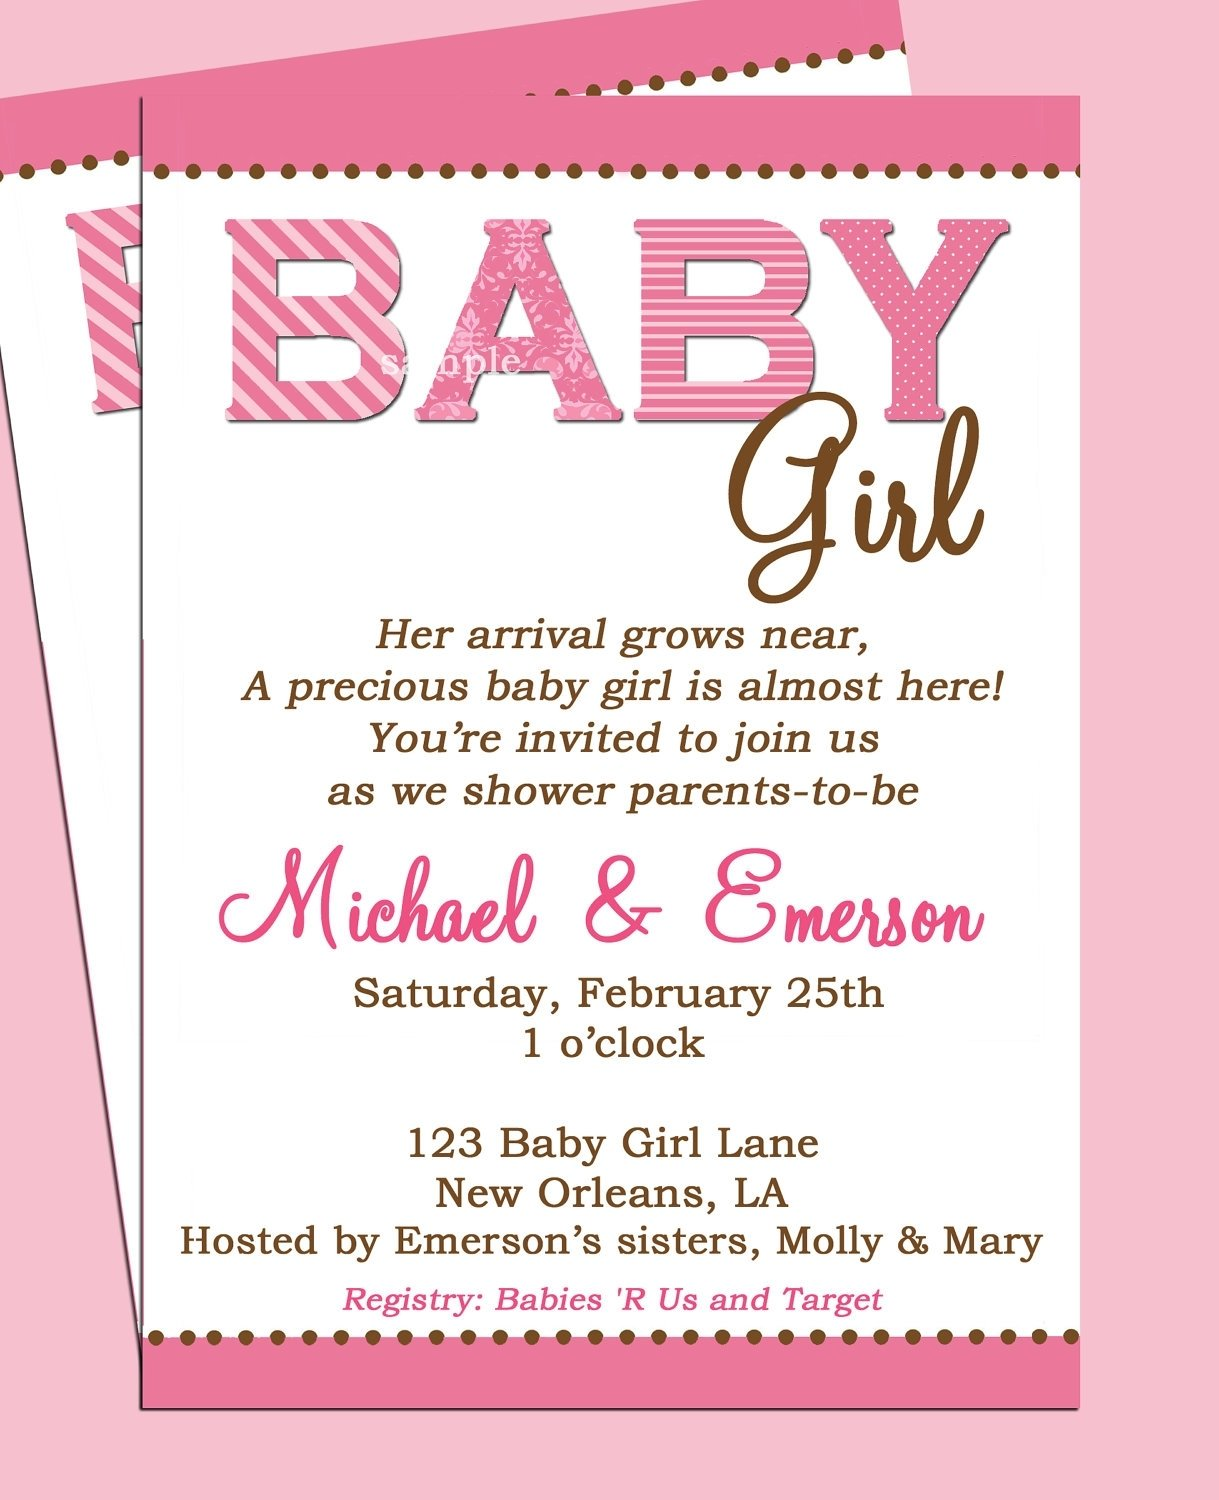 10 Attractive Invitation Ideas For Baby Shower appealing baby shower invitation wording to make baby shower 2020